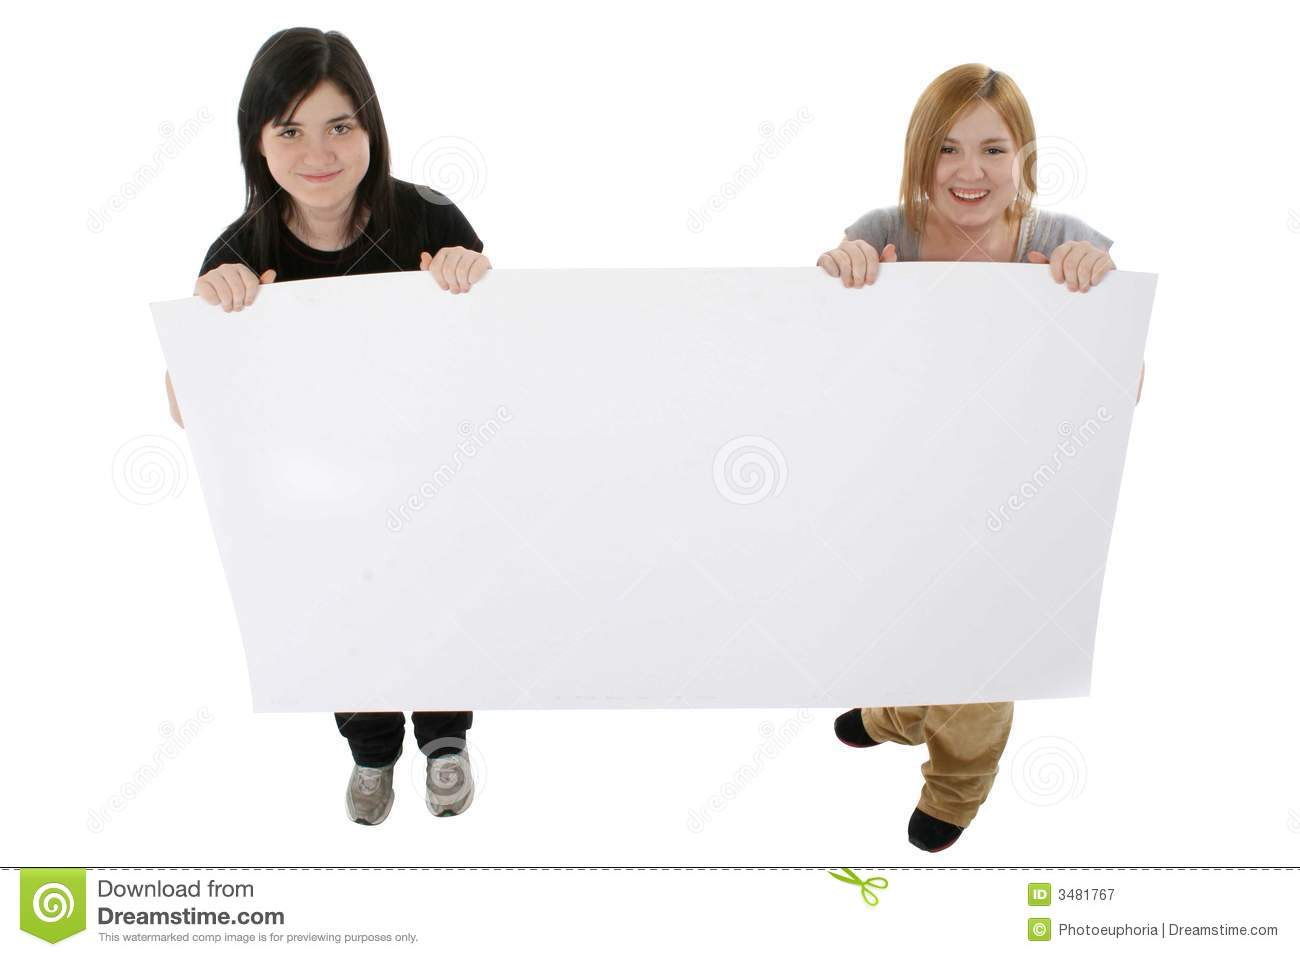 Teens with Poster